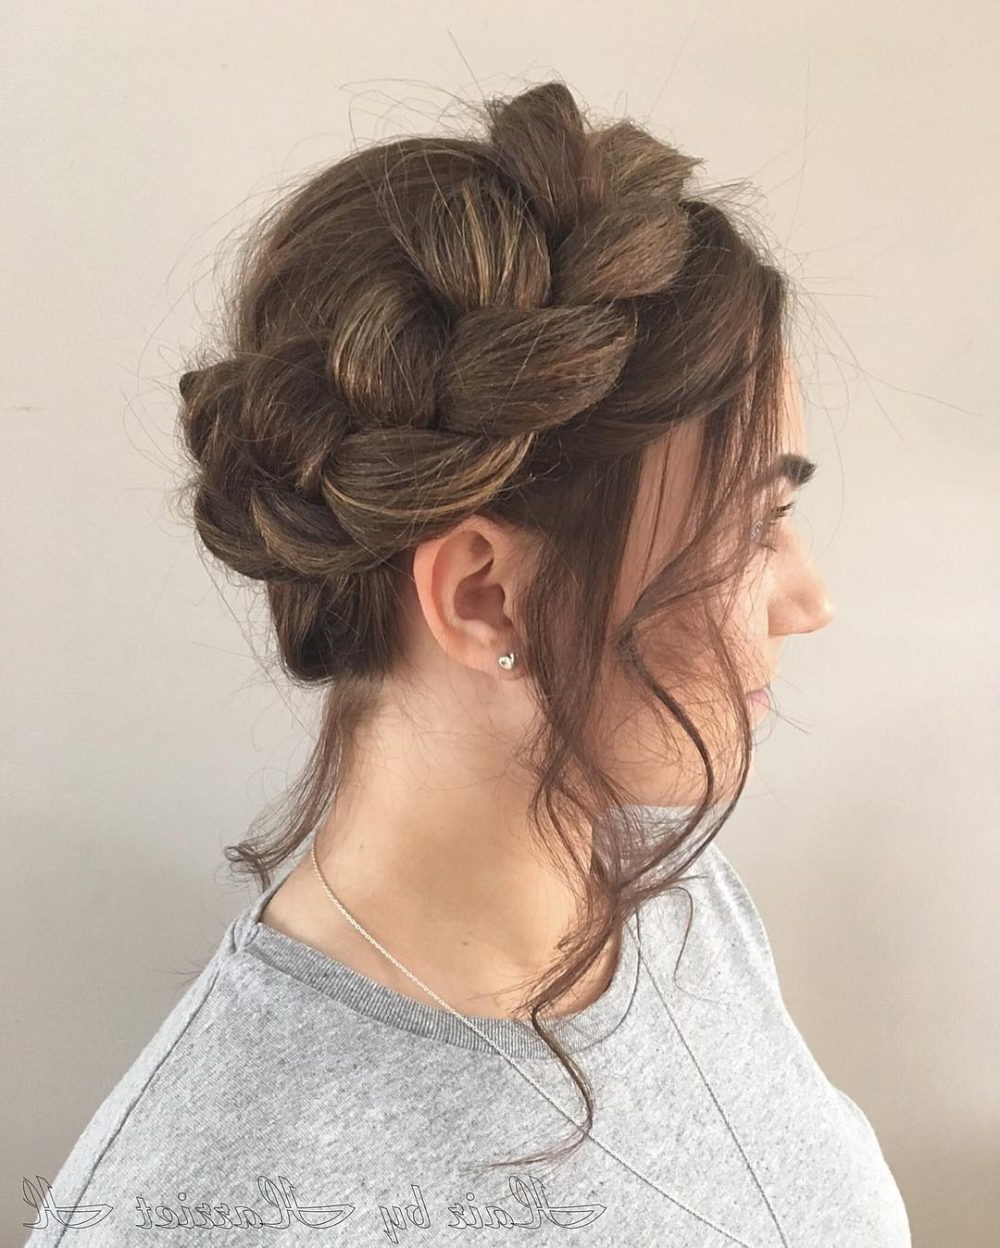 29 Gorgeous Braided Updo Ideas For 2019 Inside Trendy Side Bun Twined Prom Hairstyles With A Braid (View 13 of 20)